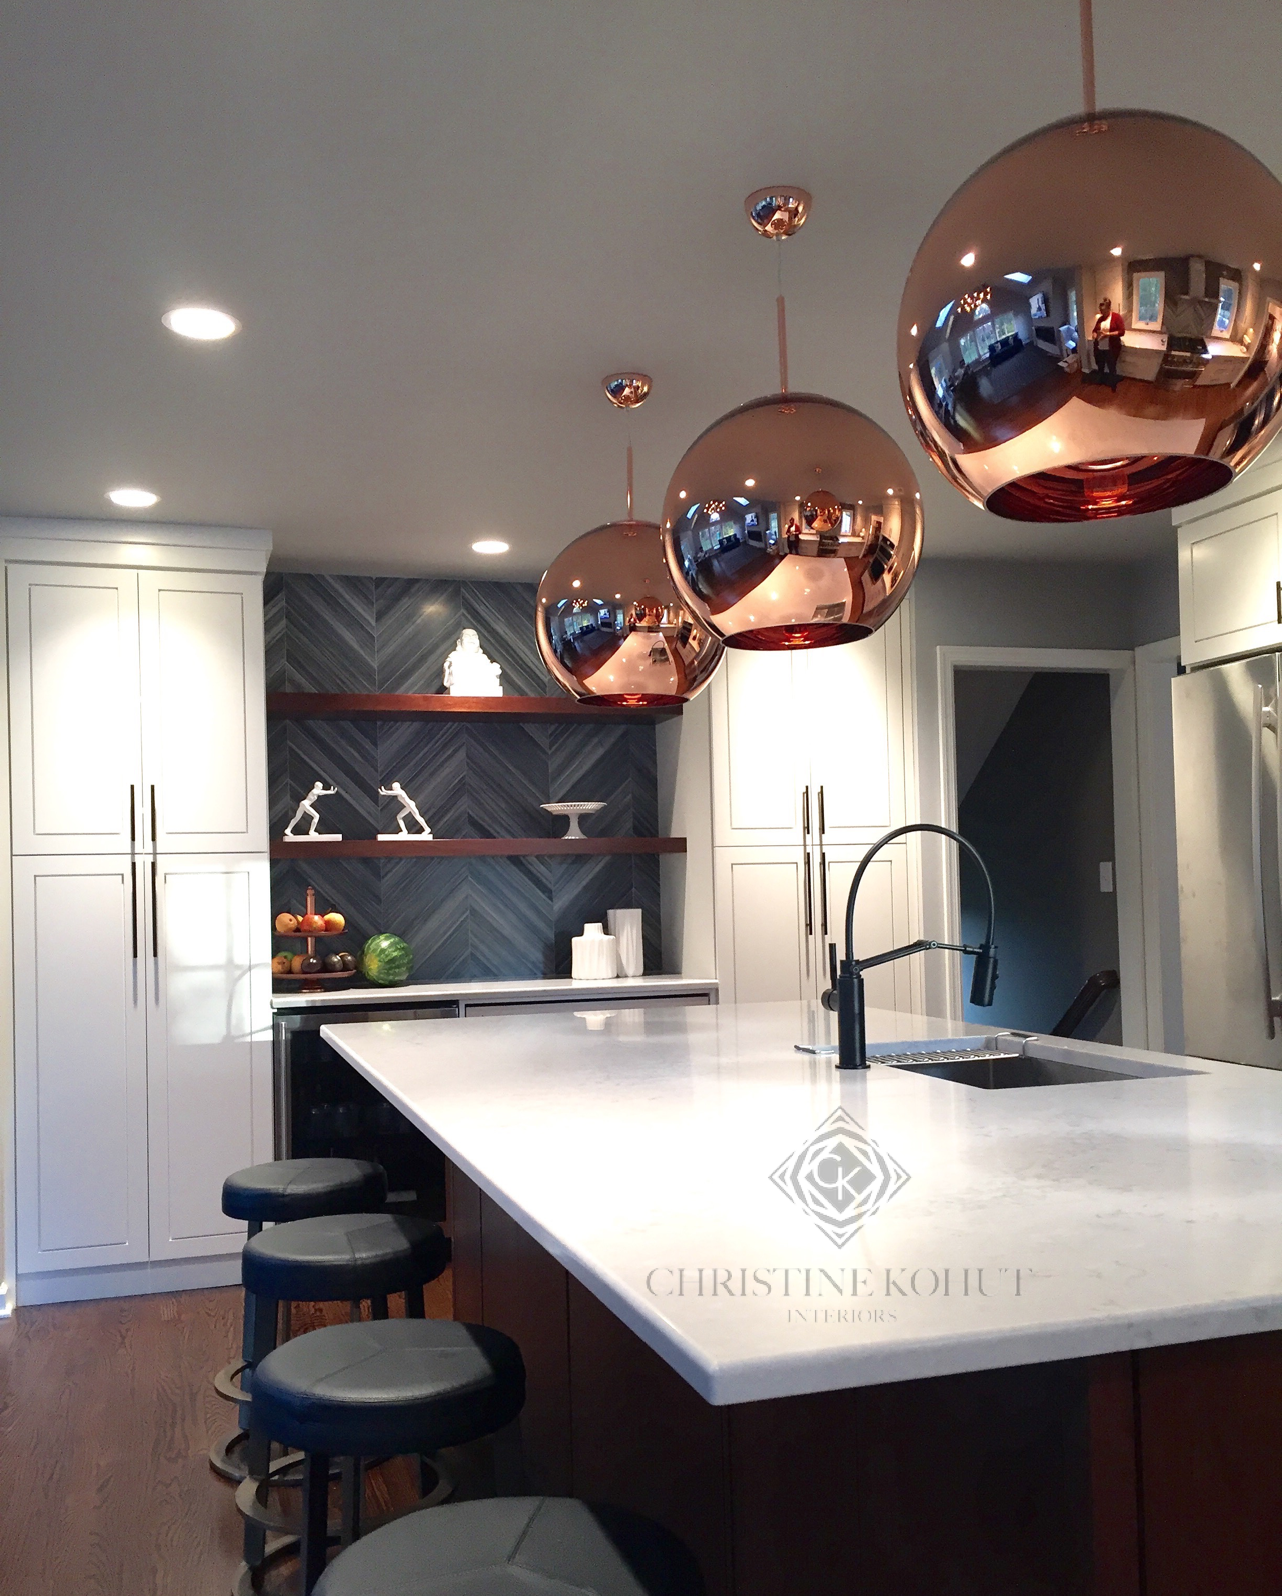 Interior Design For Kitchen Tiles: Christine Kohut Interiors. Rose Gold, Quartz Counters